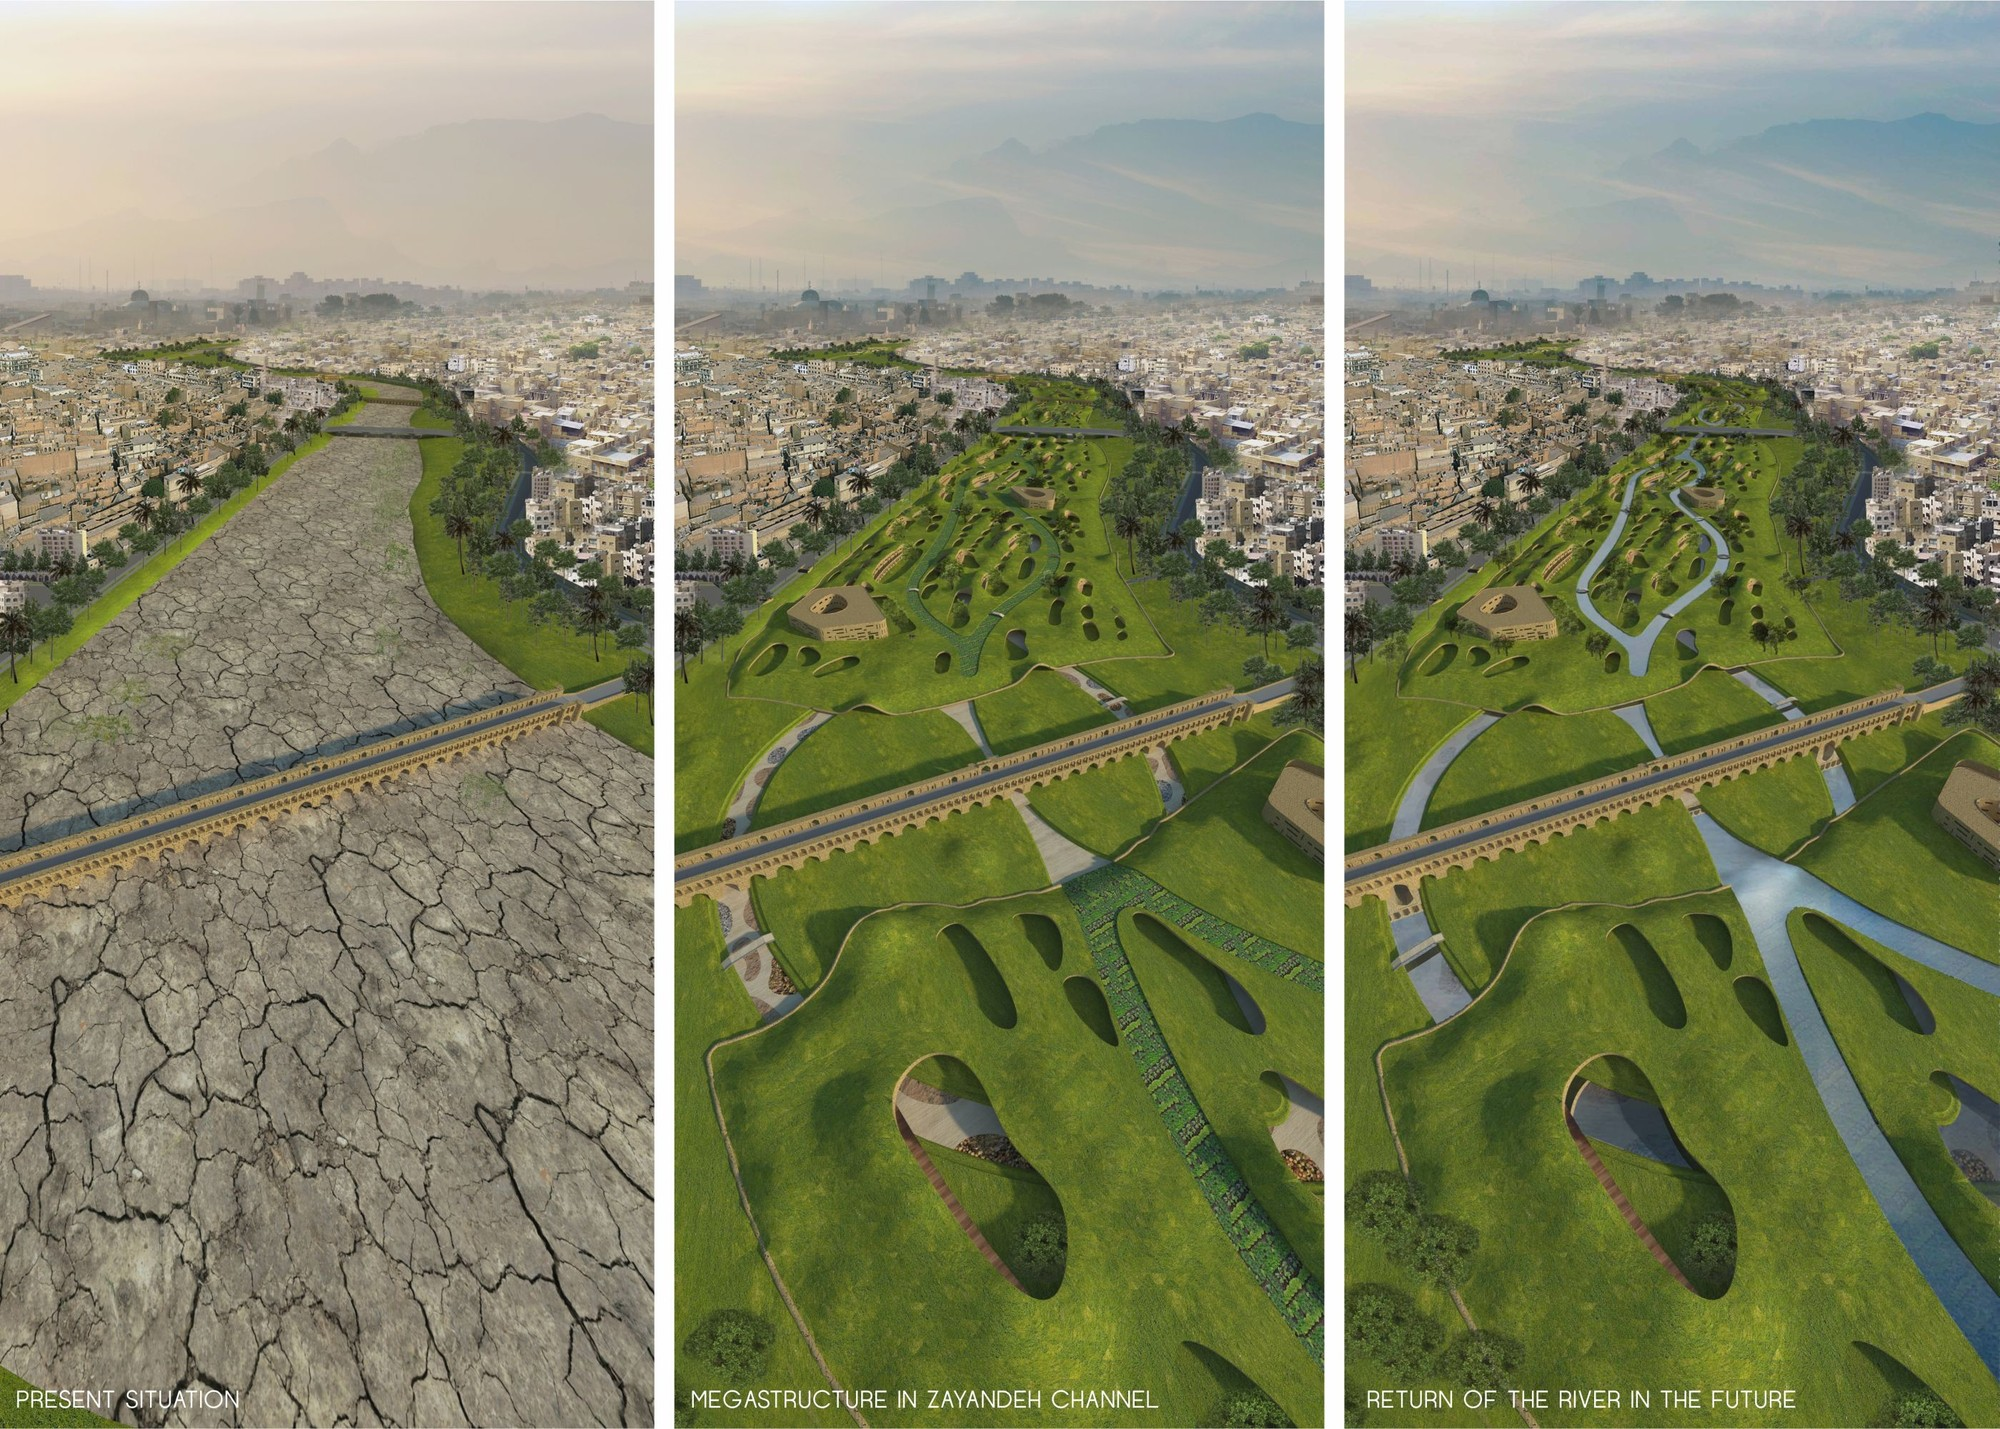 Mateusz Pospiech Proposes a Megastructure to Replace Iran's Dried Up Zayanderud River, Courtesy of Mateusz Pospiech